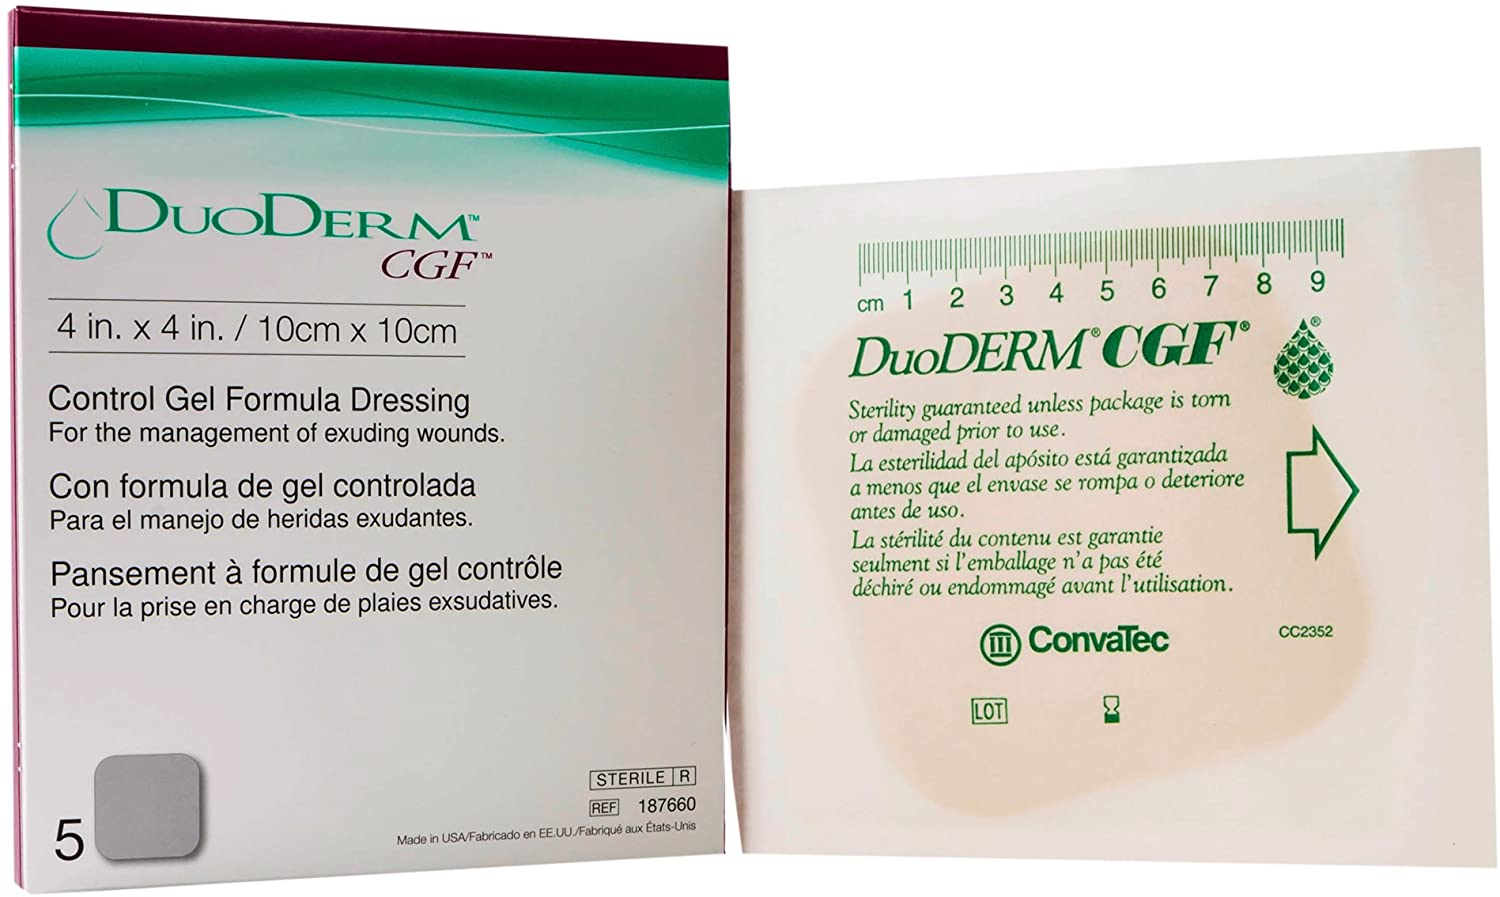 ConvaTec Duoderm CGF Hydrocolloid Wound Dressing 4 L x 4 w Size Square Shape (Box of 5 Each)